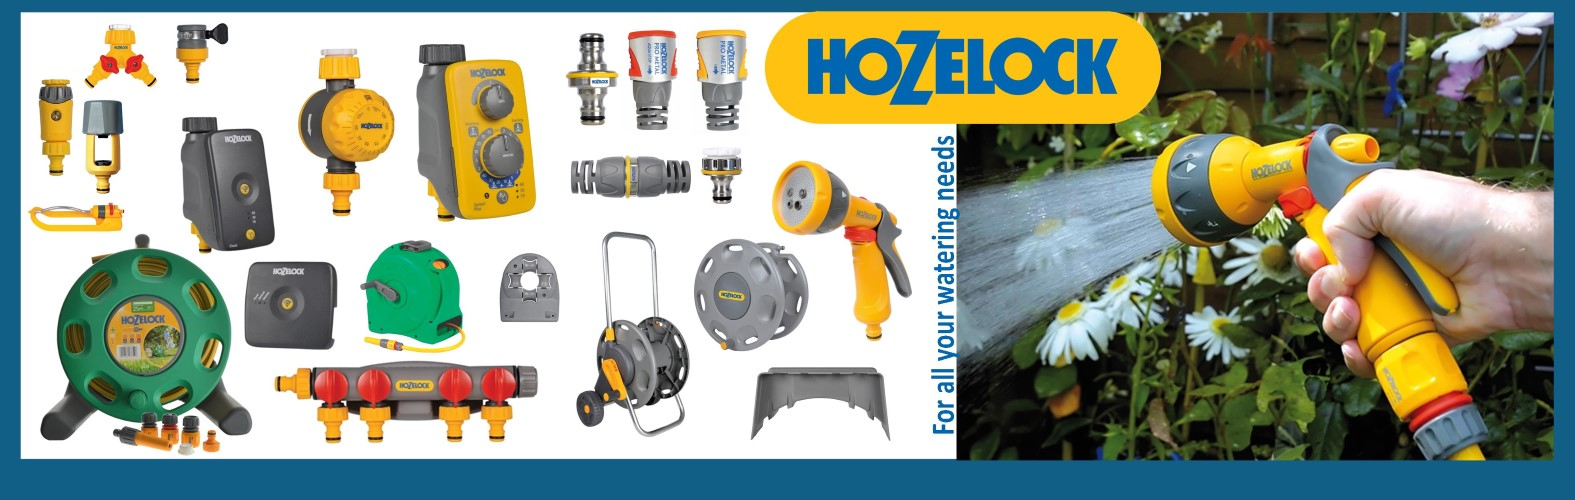 View our range of Hozelock hoses, adapters, reels and watering systems